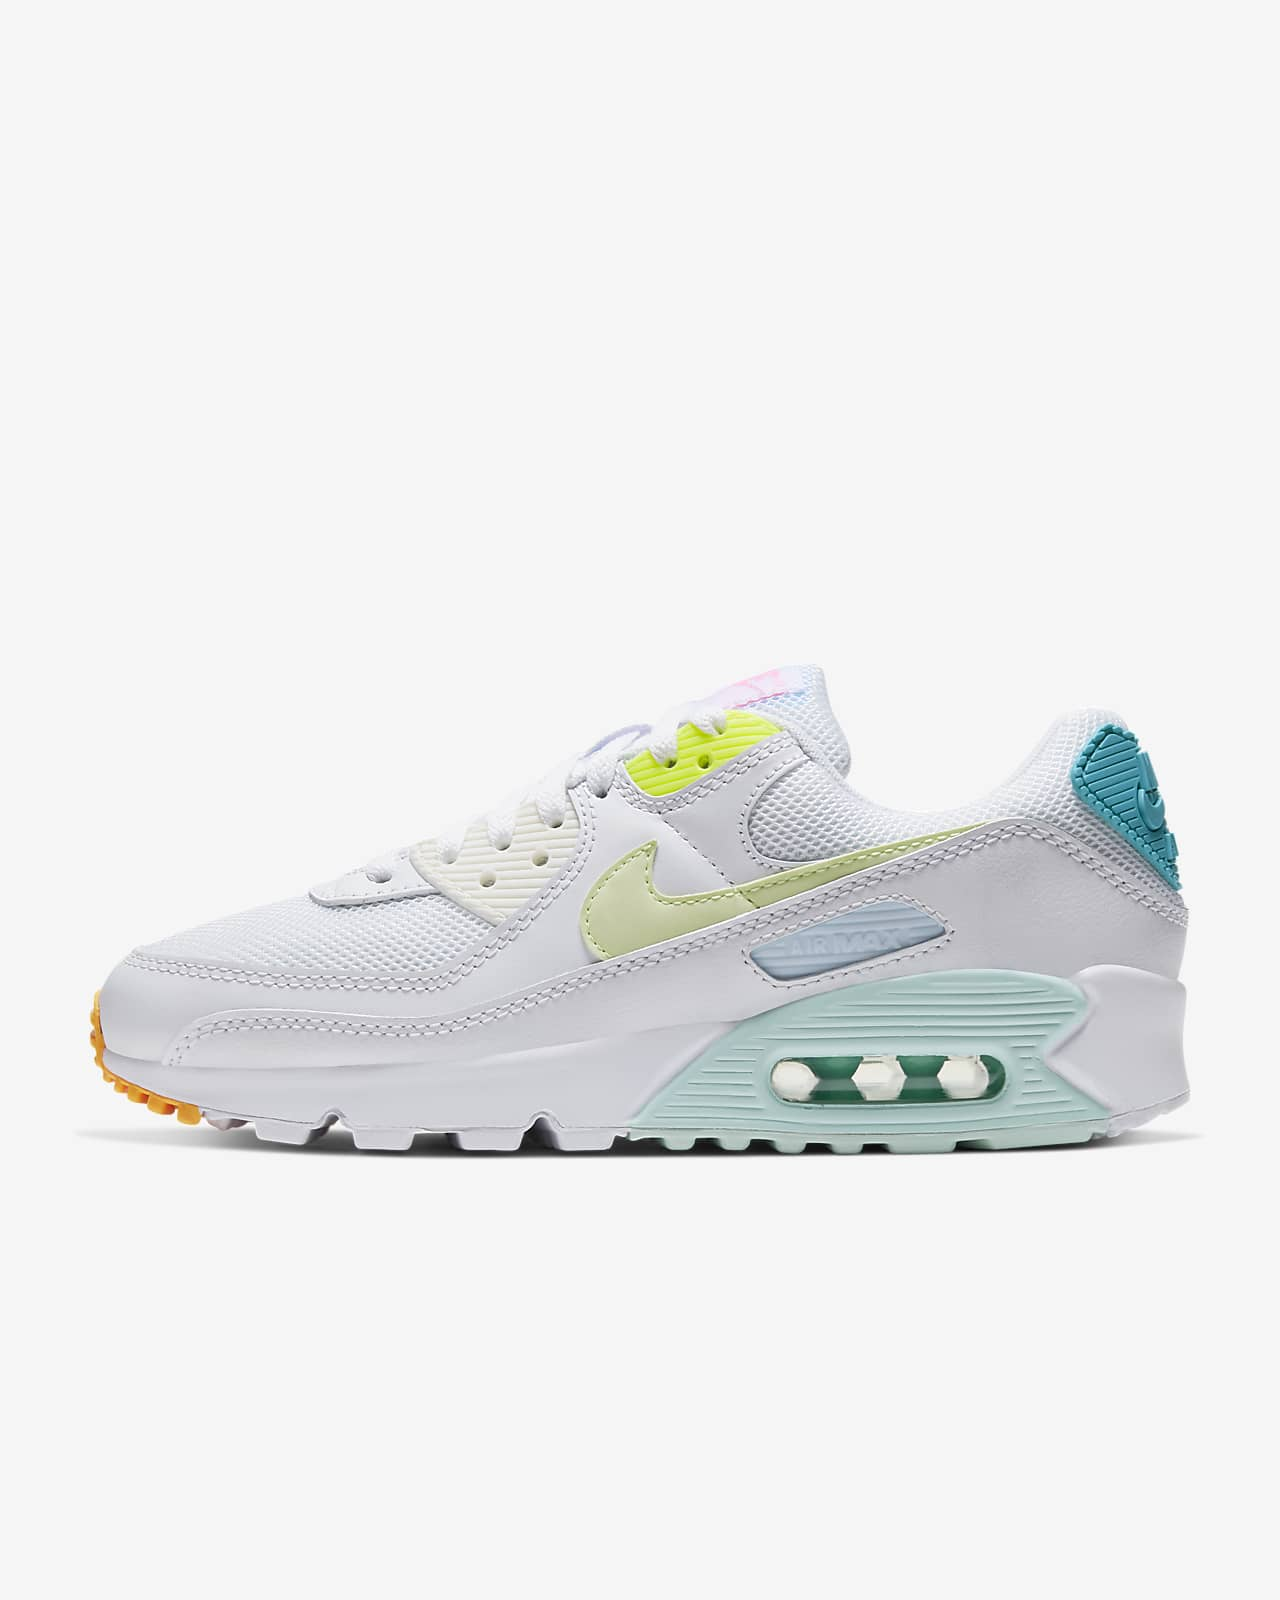 nike femme chaussures pastel